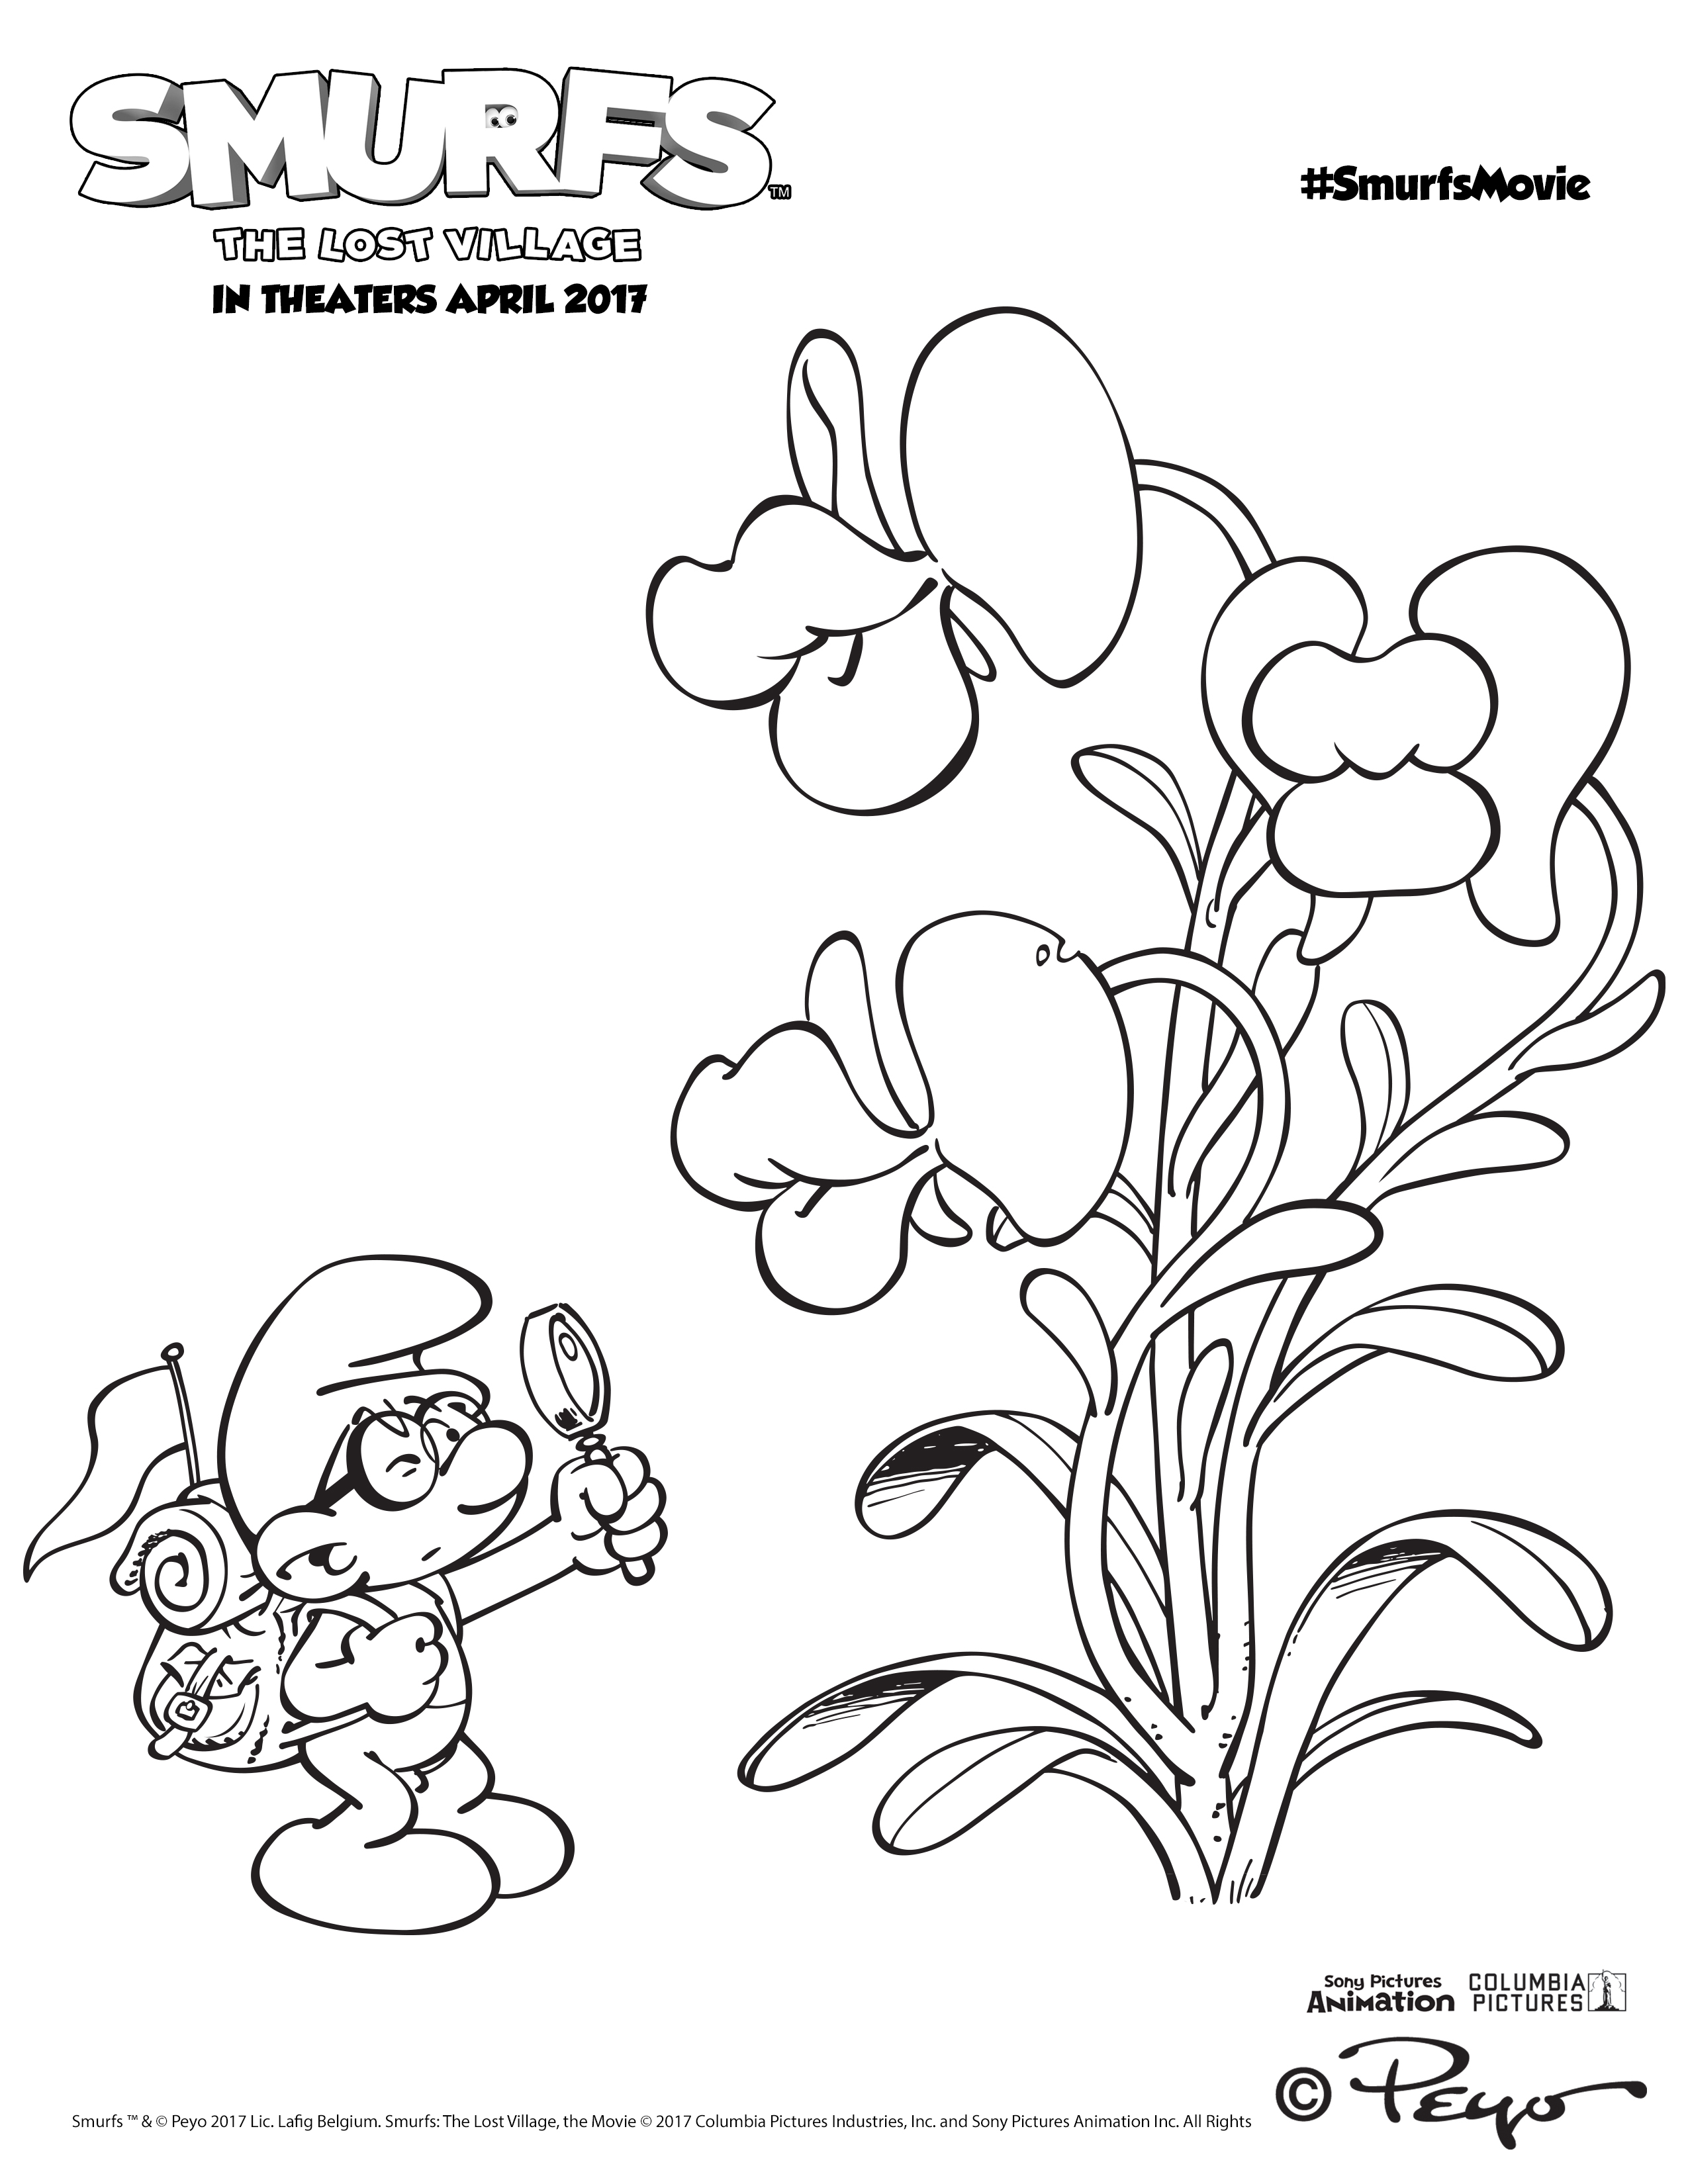 FREE SMURFS: THE LOST VILLAGE PRINTABLE ACTIVITIES